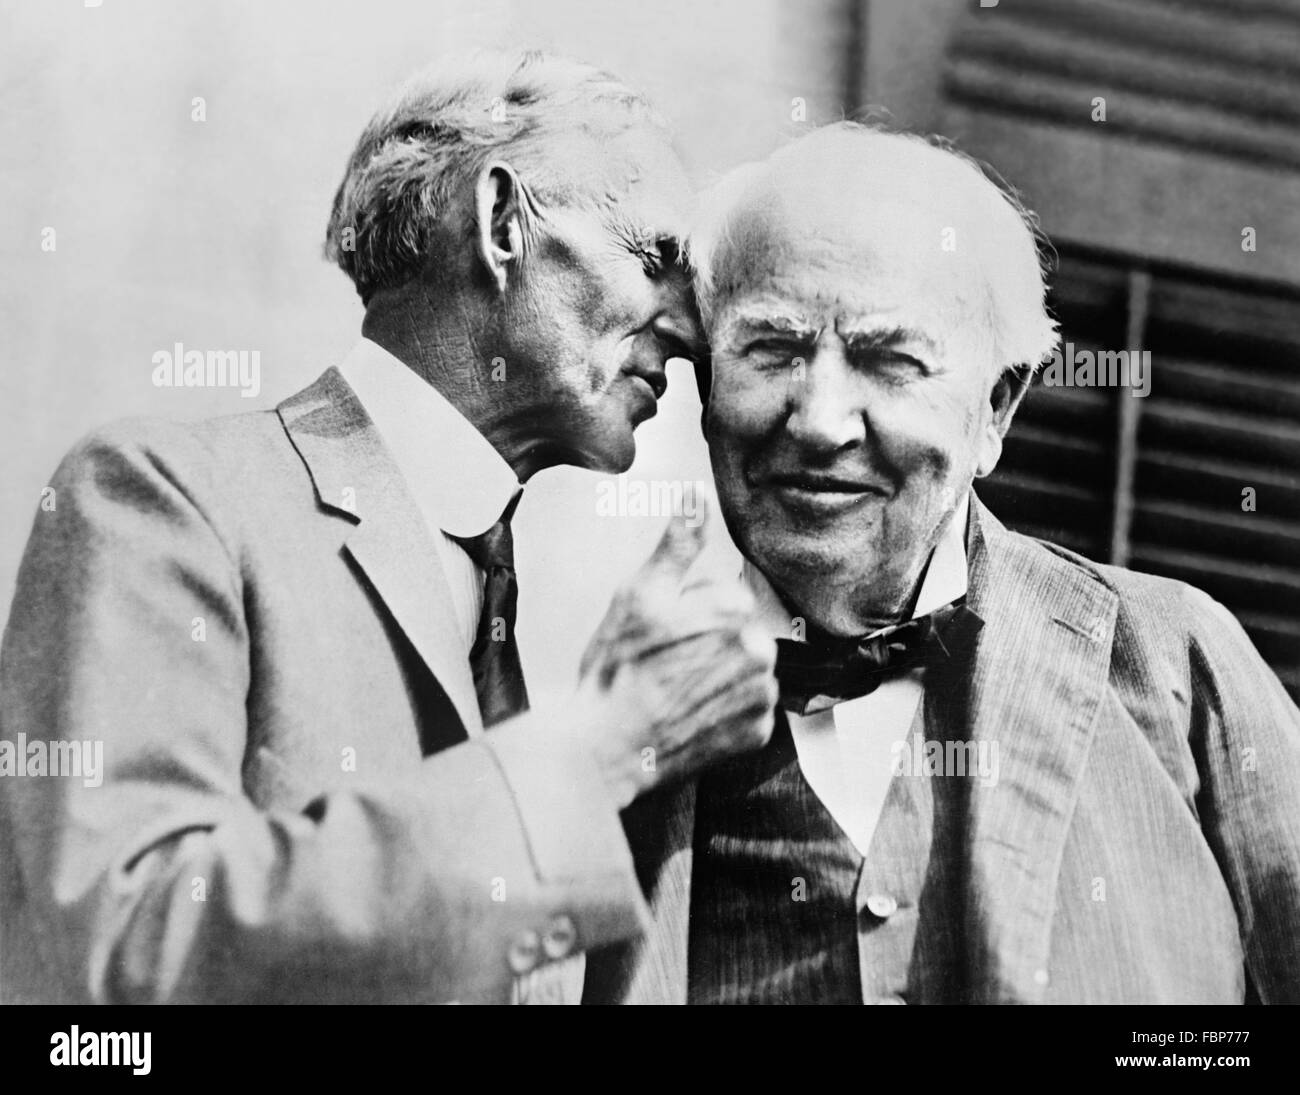 Automobile pioneer Henry Ford talking to inventor Thomas Alva Edison, c.1930 - Stock Image